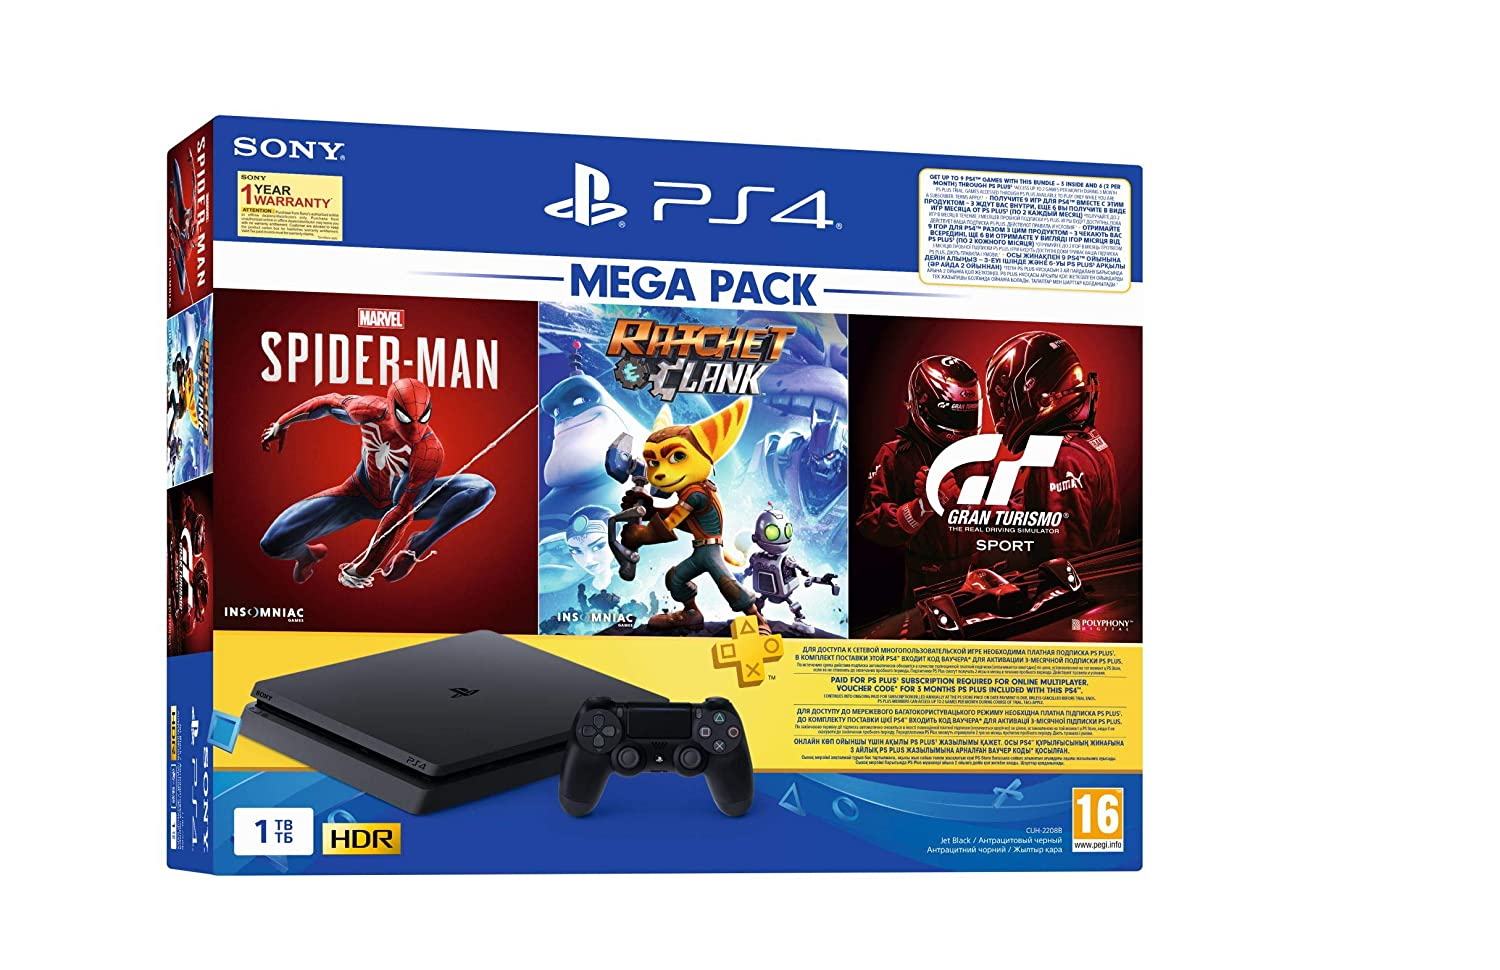 PS4 1TB Slim bundle: Starting worth rupee 2-,990